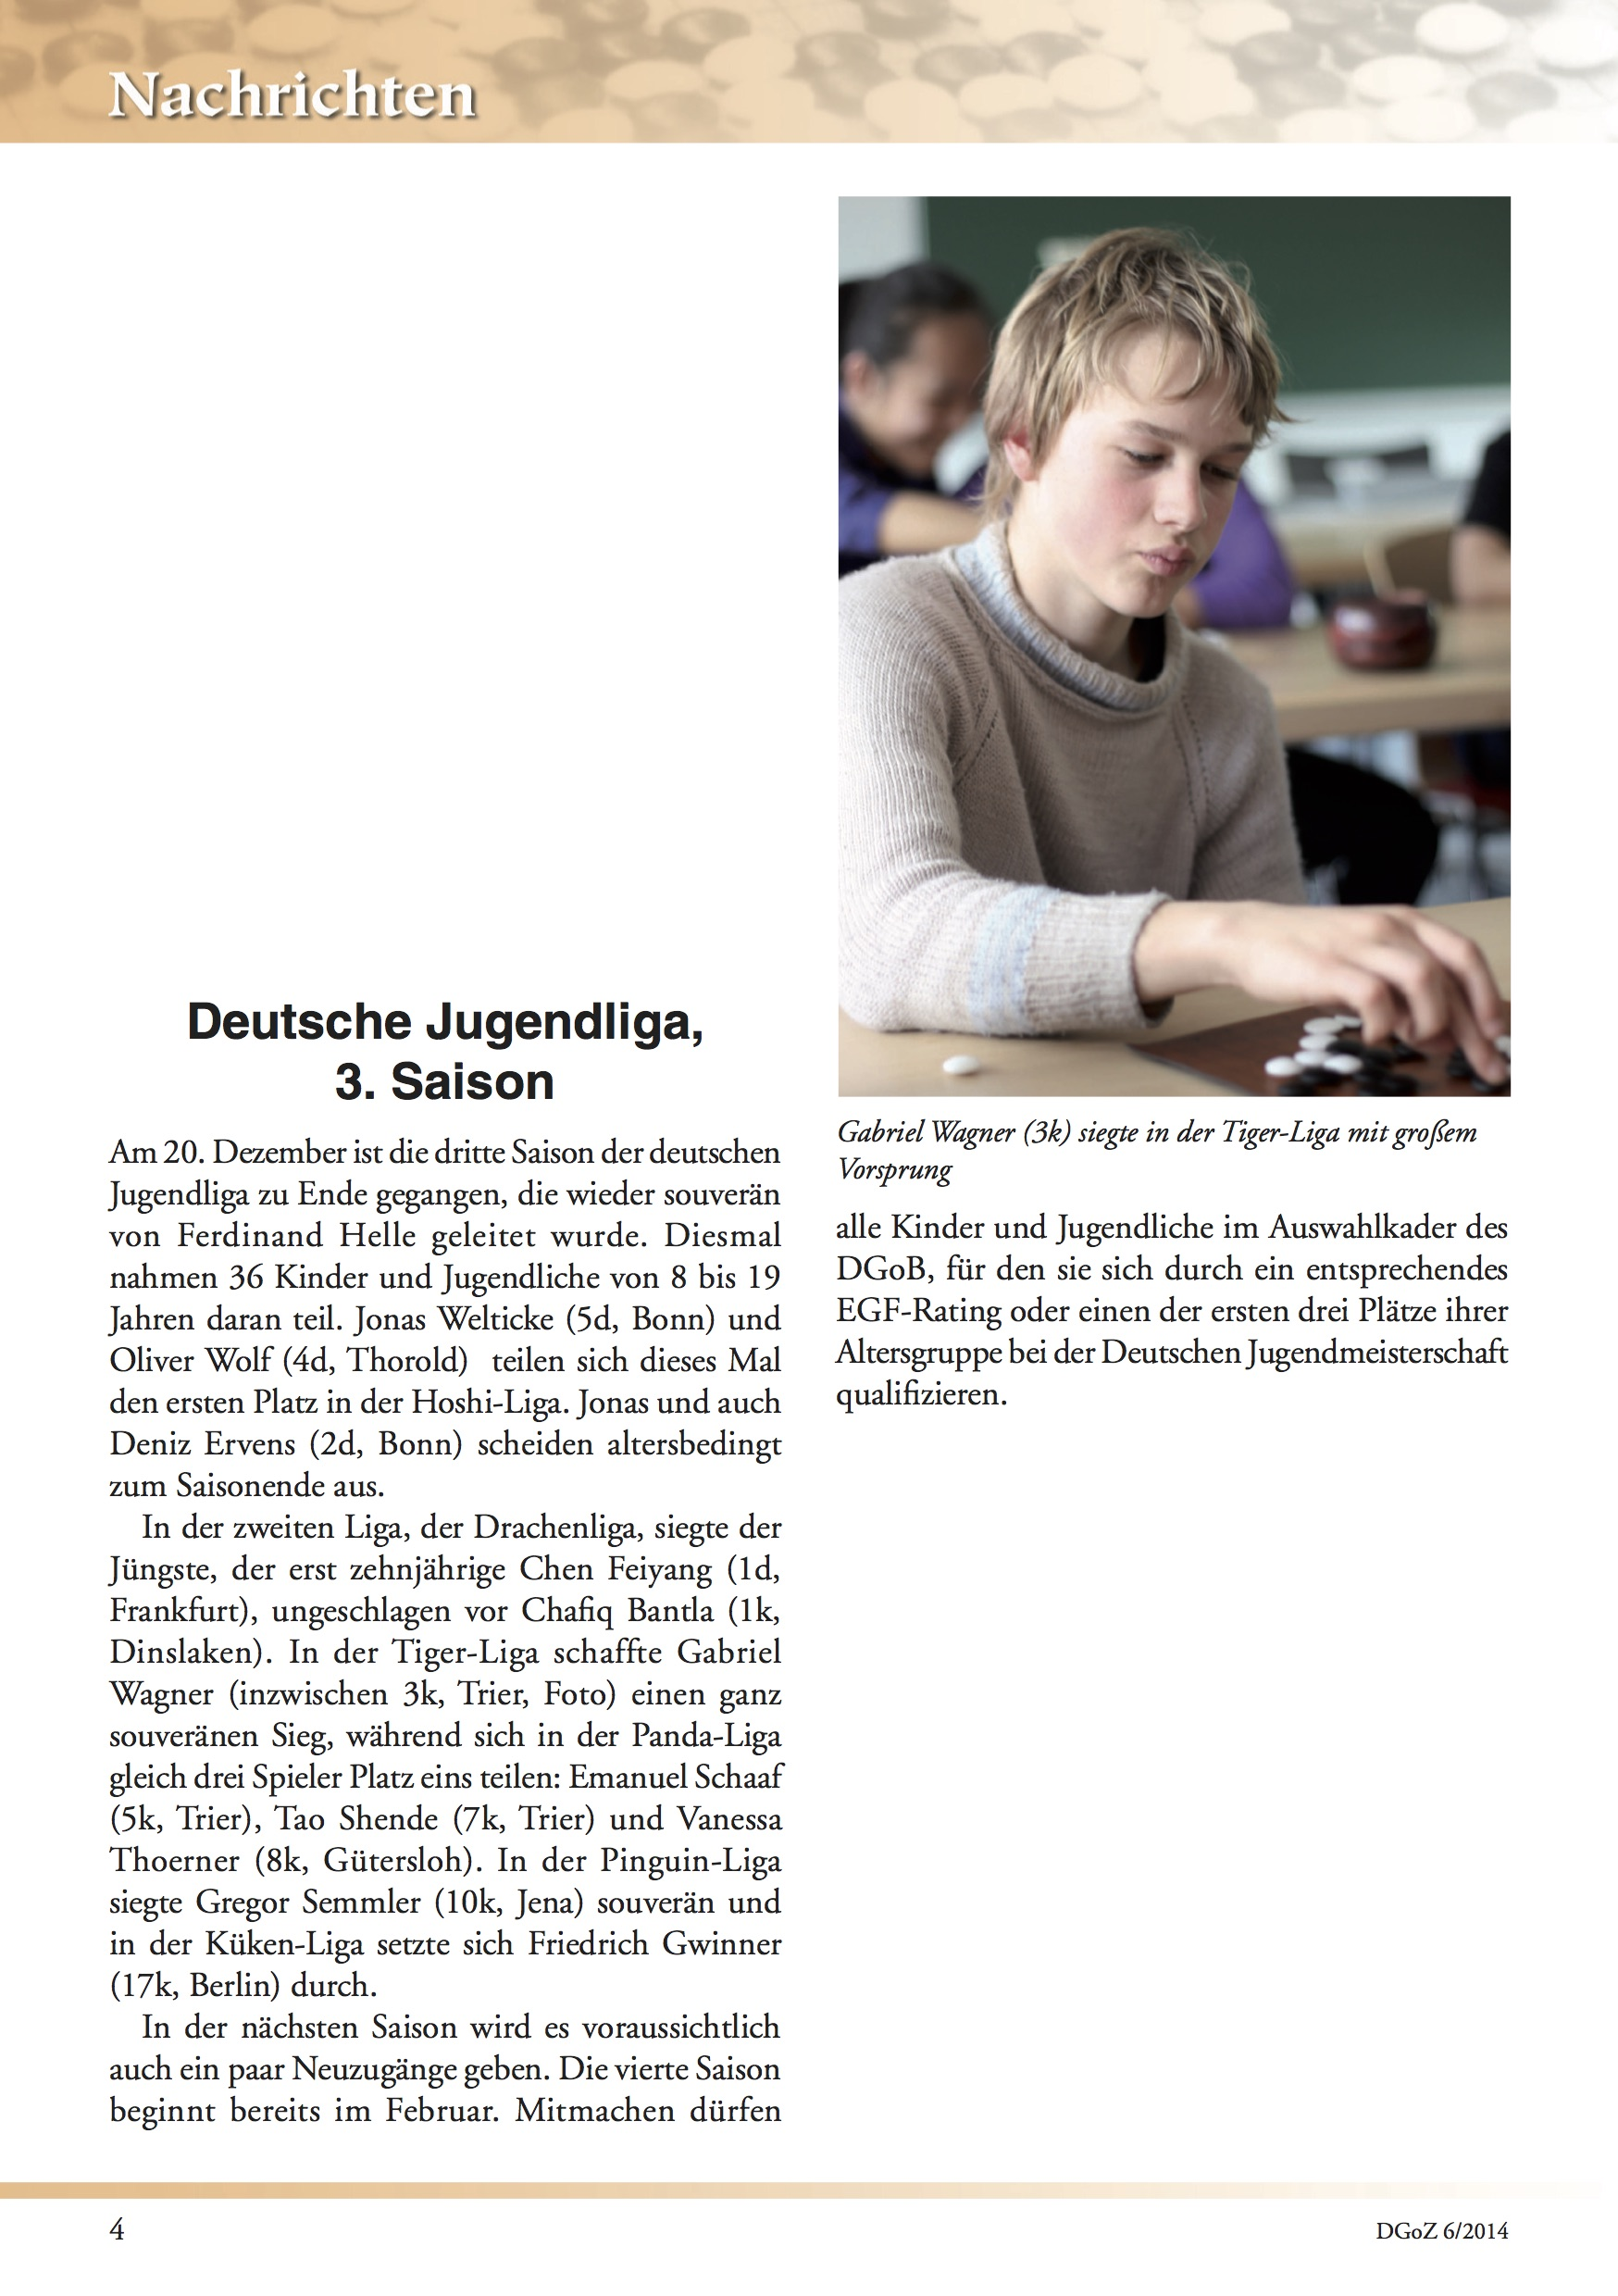 Another article in the German Go Magazine